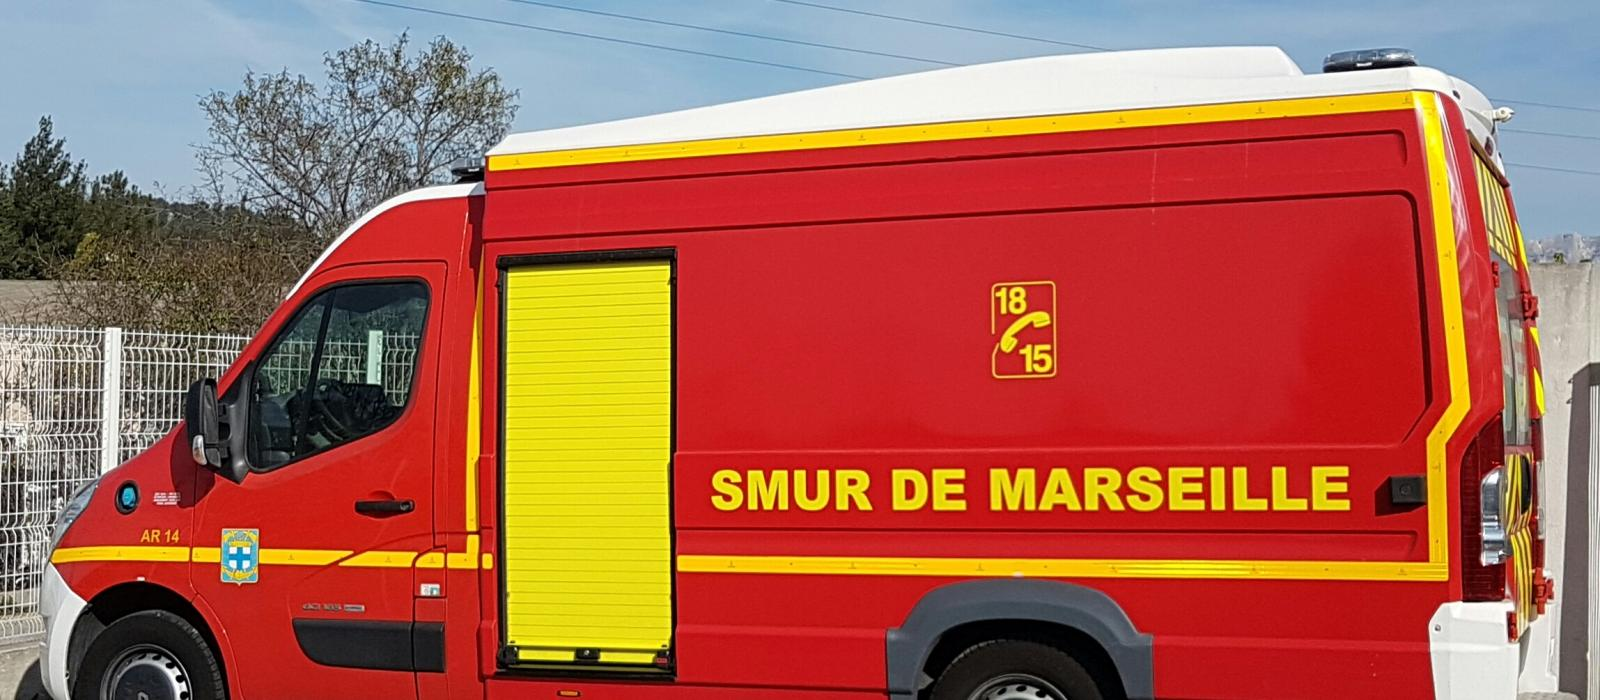 vehicule de pompier top vhicule avec sirne playmobil pompiers et aroport with vehicule de. Black Bedroom Furniture Sets. Home Design Ideas